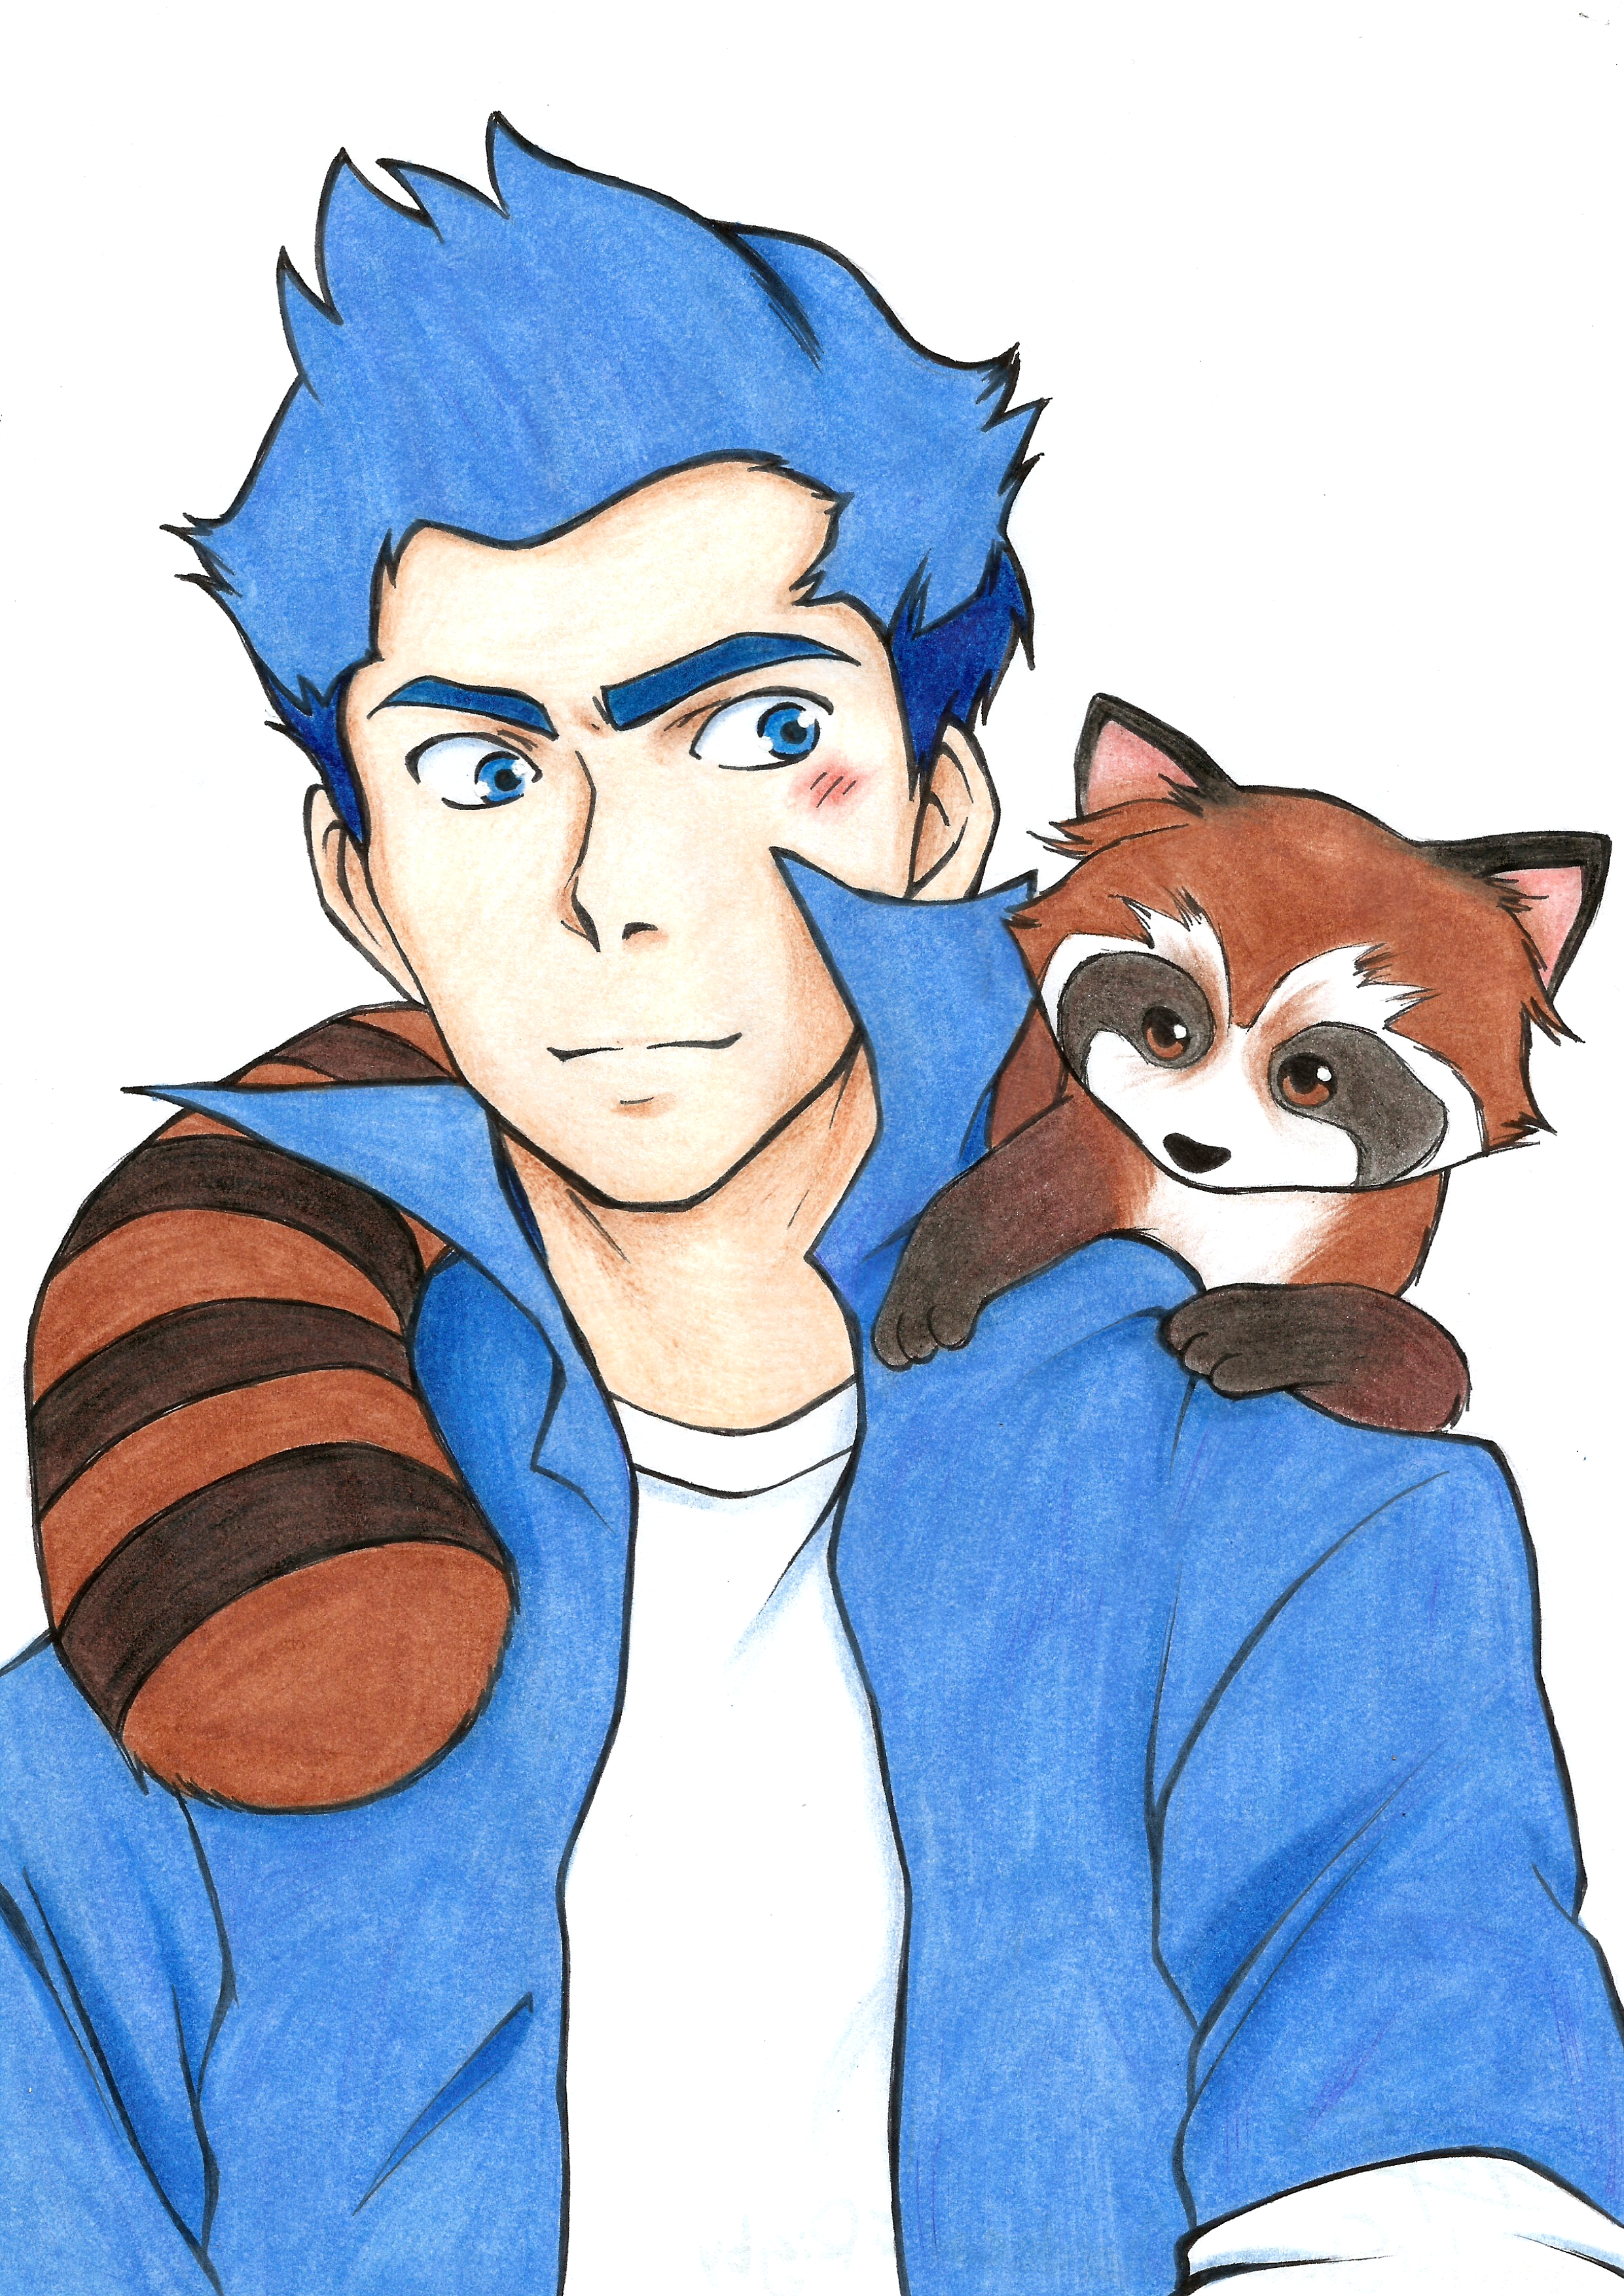 Mordecai and Rigby by flodoyle on DeviantArt